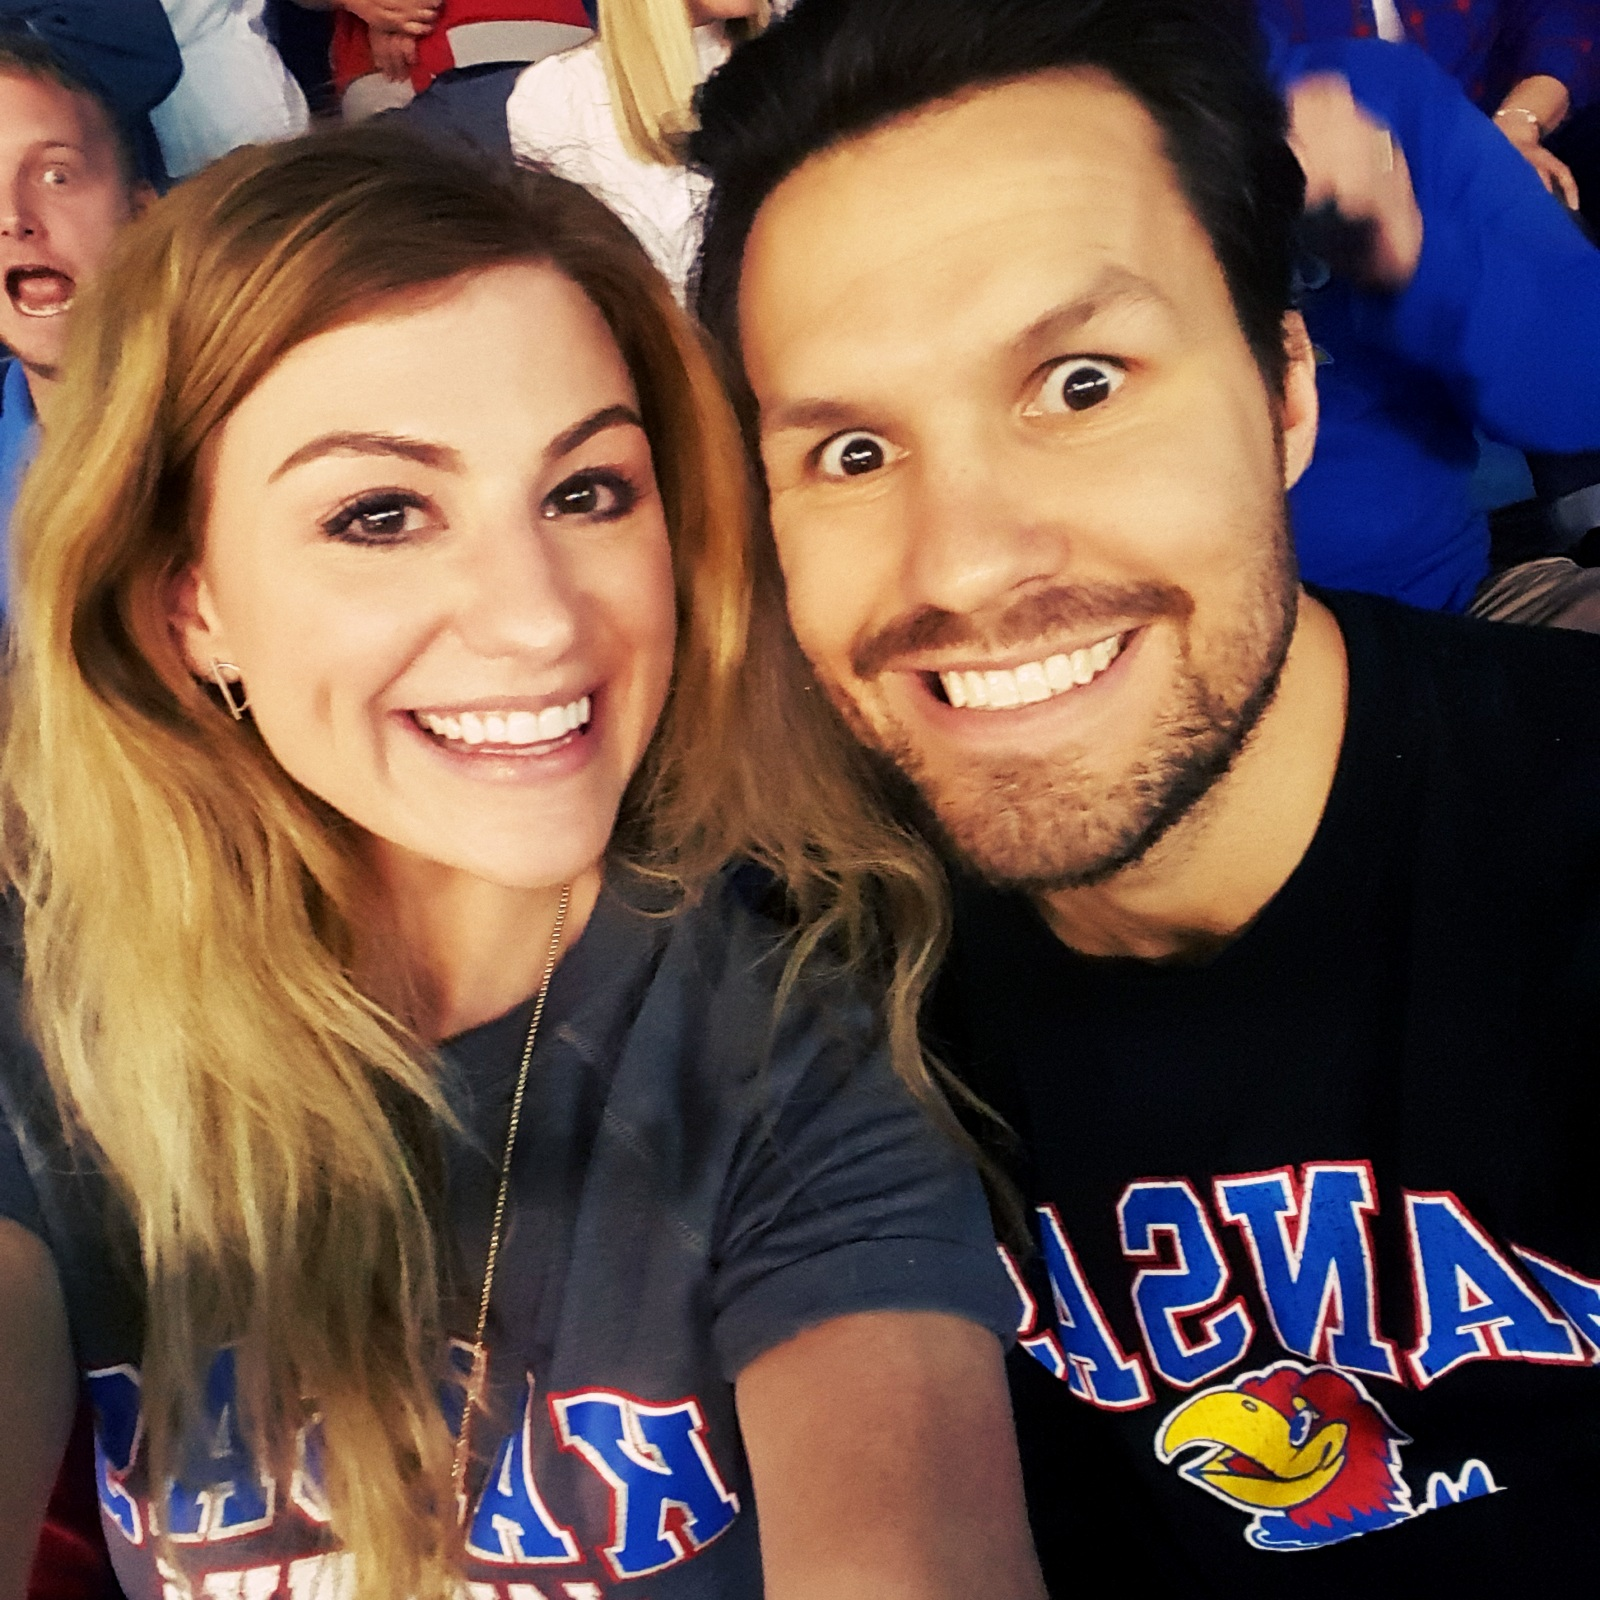 ashley and dave at ku game